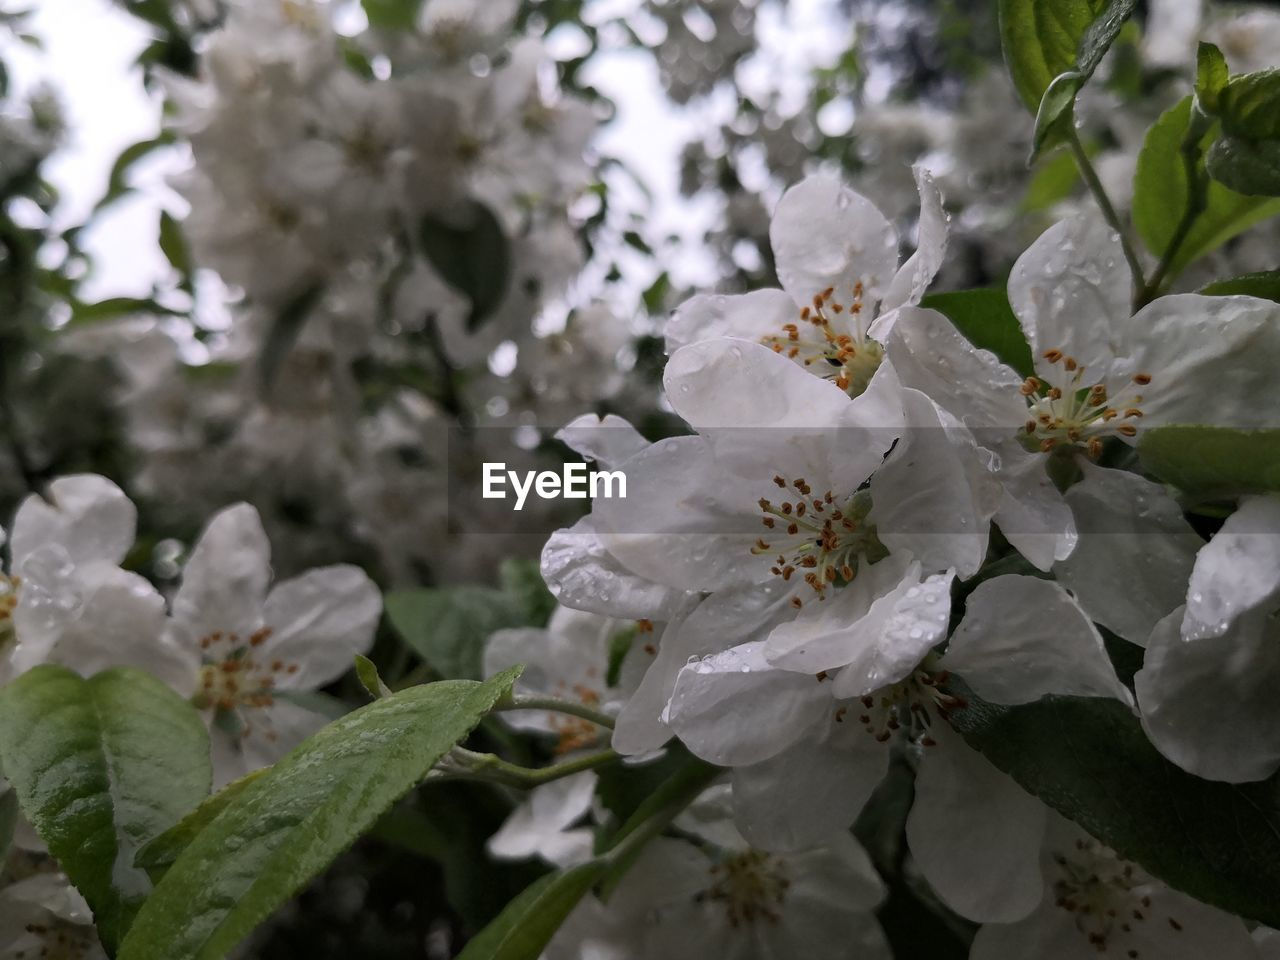 flowering plant, growth, flower, plant, fragility, vulnerability, beauty in nature, freshness, petal, close-up, blossom, white color, inflorescence, flower head, nature, plant part, springtime, day, focus on foreground, pollen, no people, outdoors, cherry blossom, spring, cherry tree, bunch of flowers